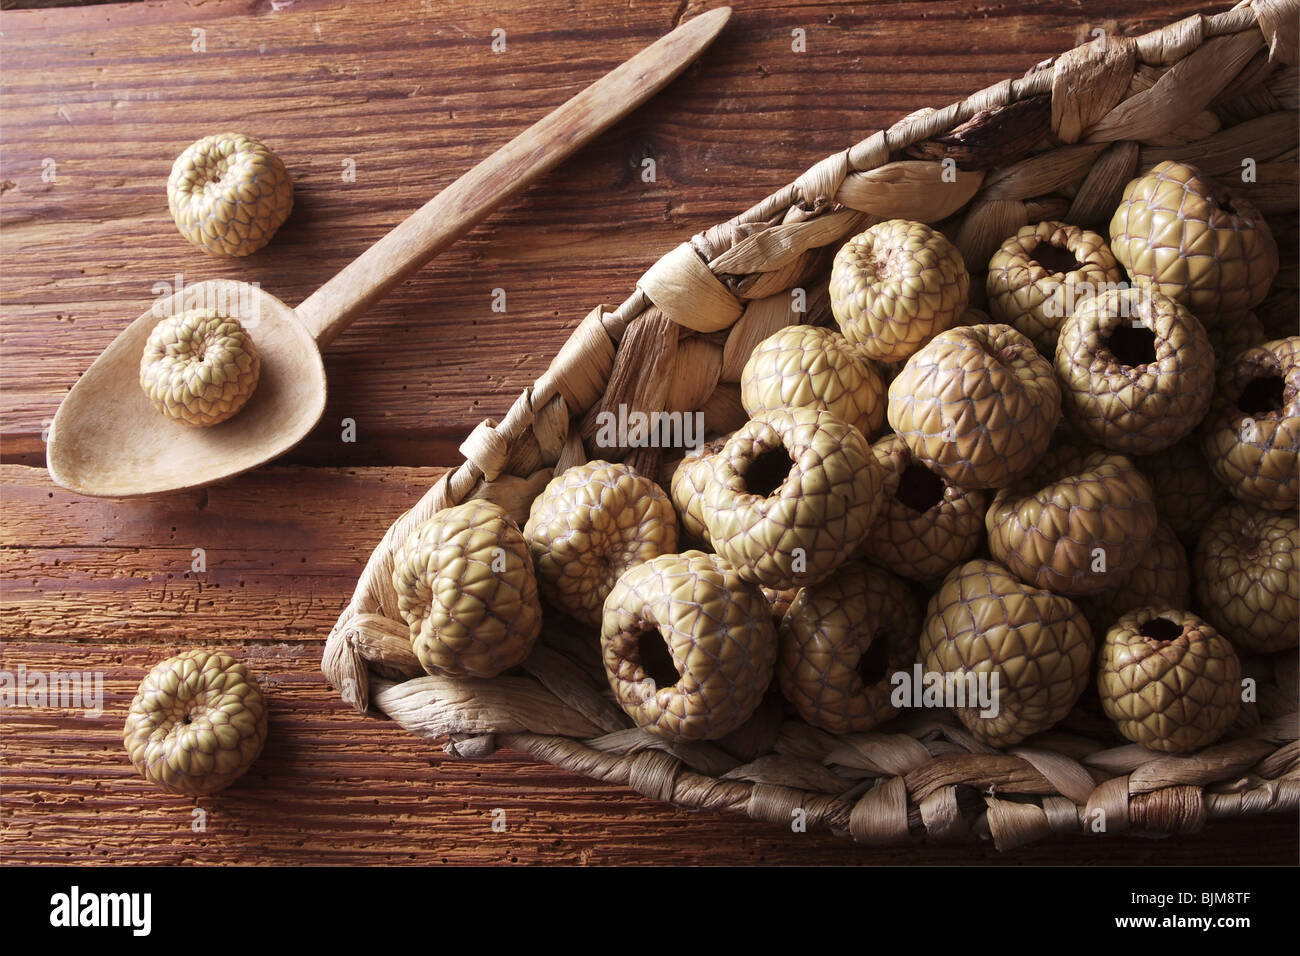 Salak or Snake Fruit (Salacca zalacca) in a wicker basket on a rustic wooden background Stock Photo